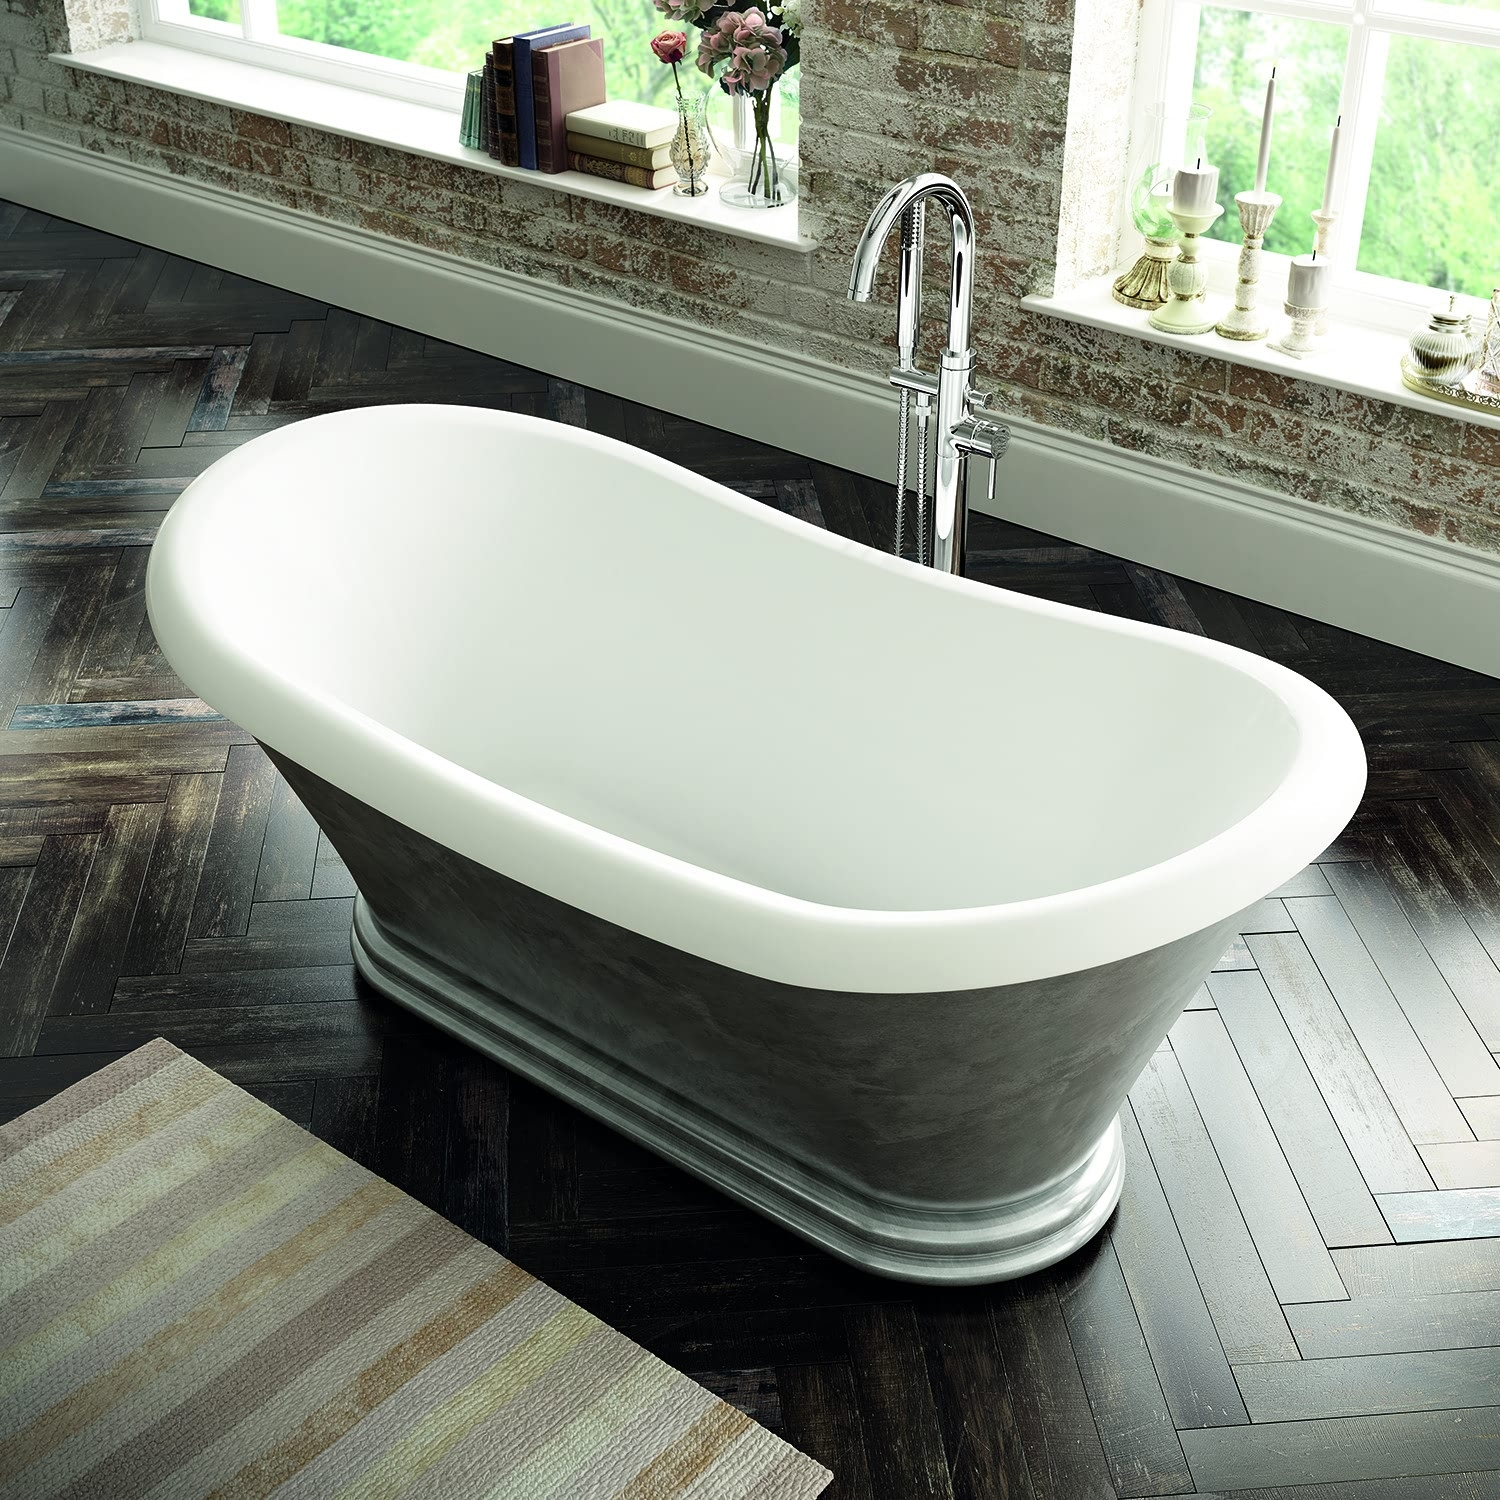 Verona Knightsbridge Freestanding Double Ended Bath 1700mm x 740mm - Scratched Aluminium Finish-0